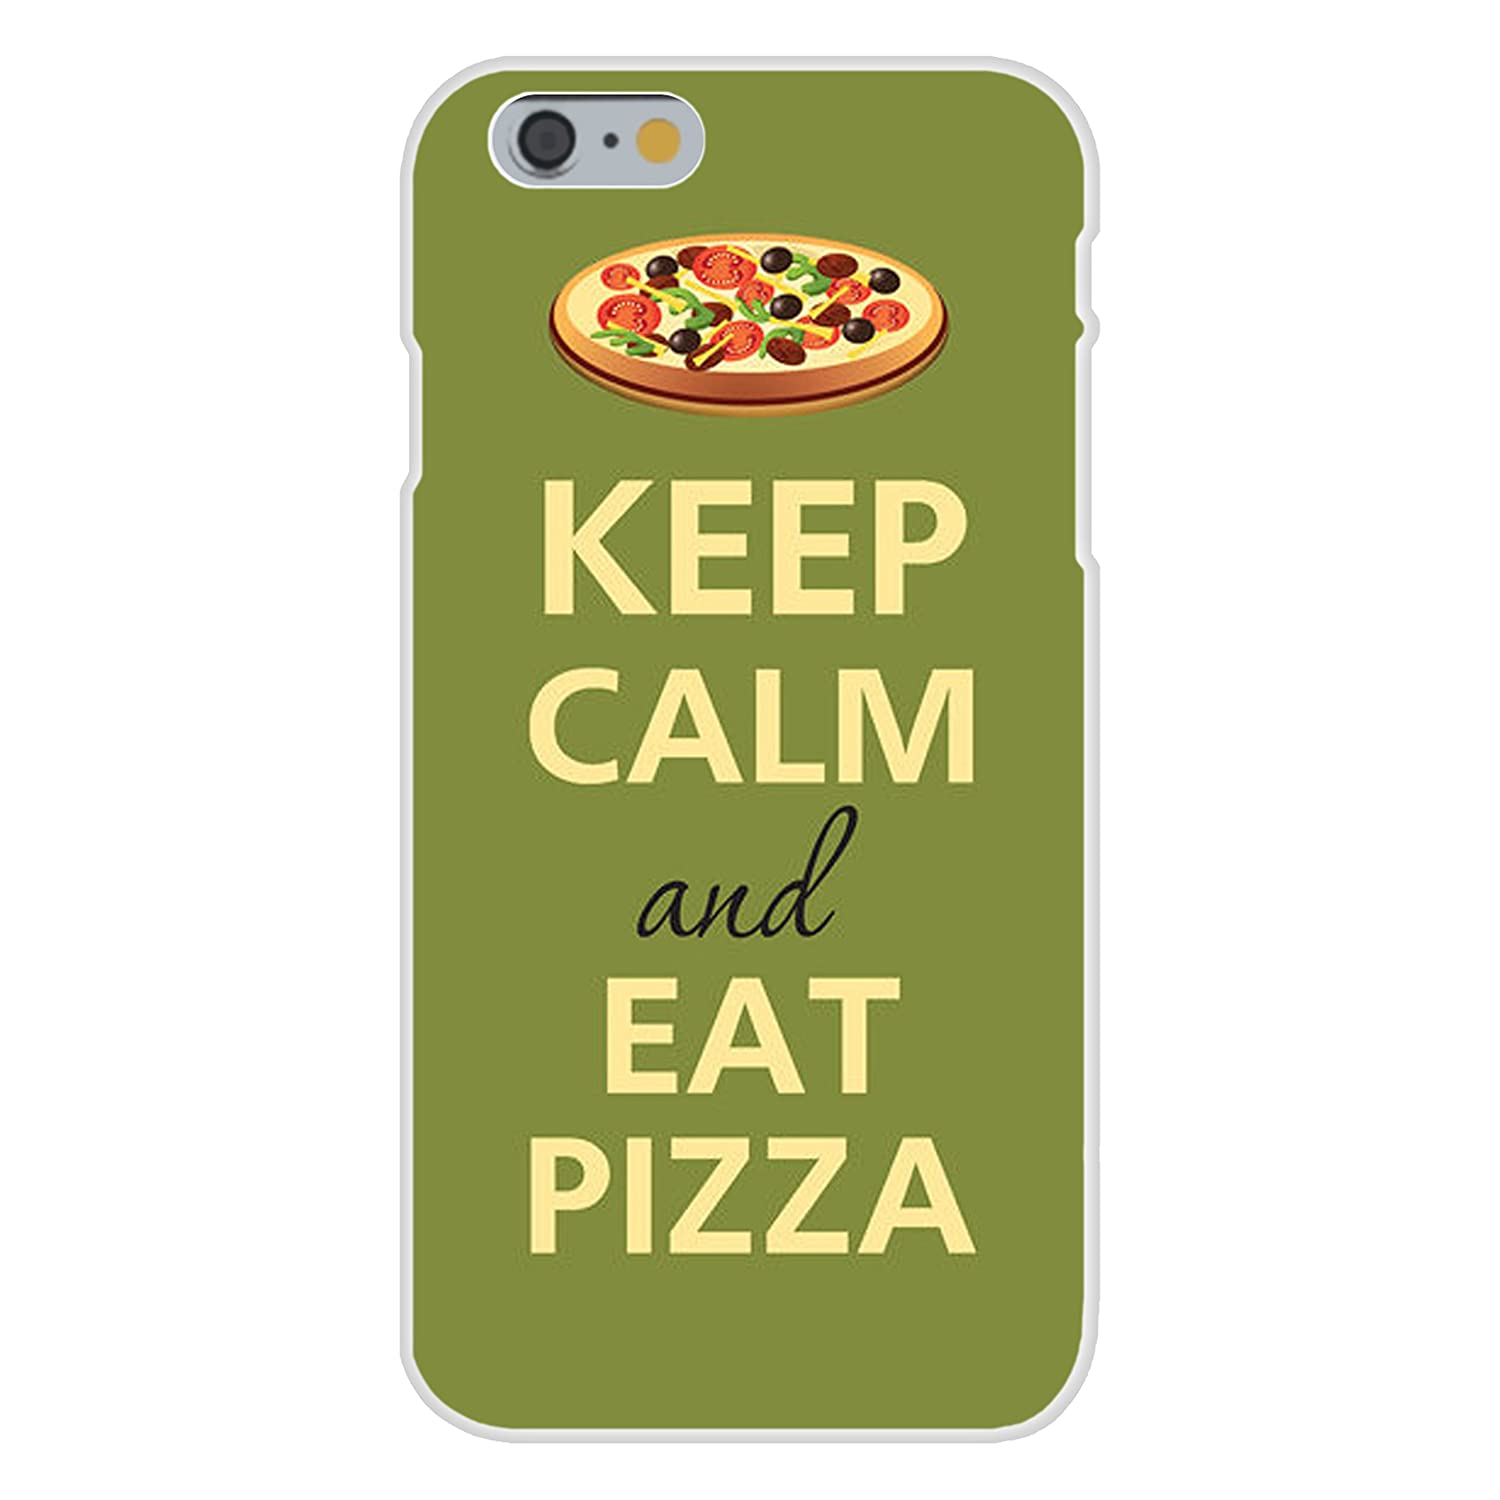 Apple iPhone 6+ (Plus) Custom Case White Plastic Snap On - Keep Calm and Eat Pizza Green